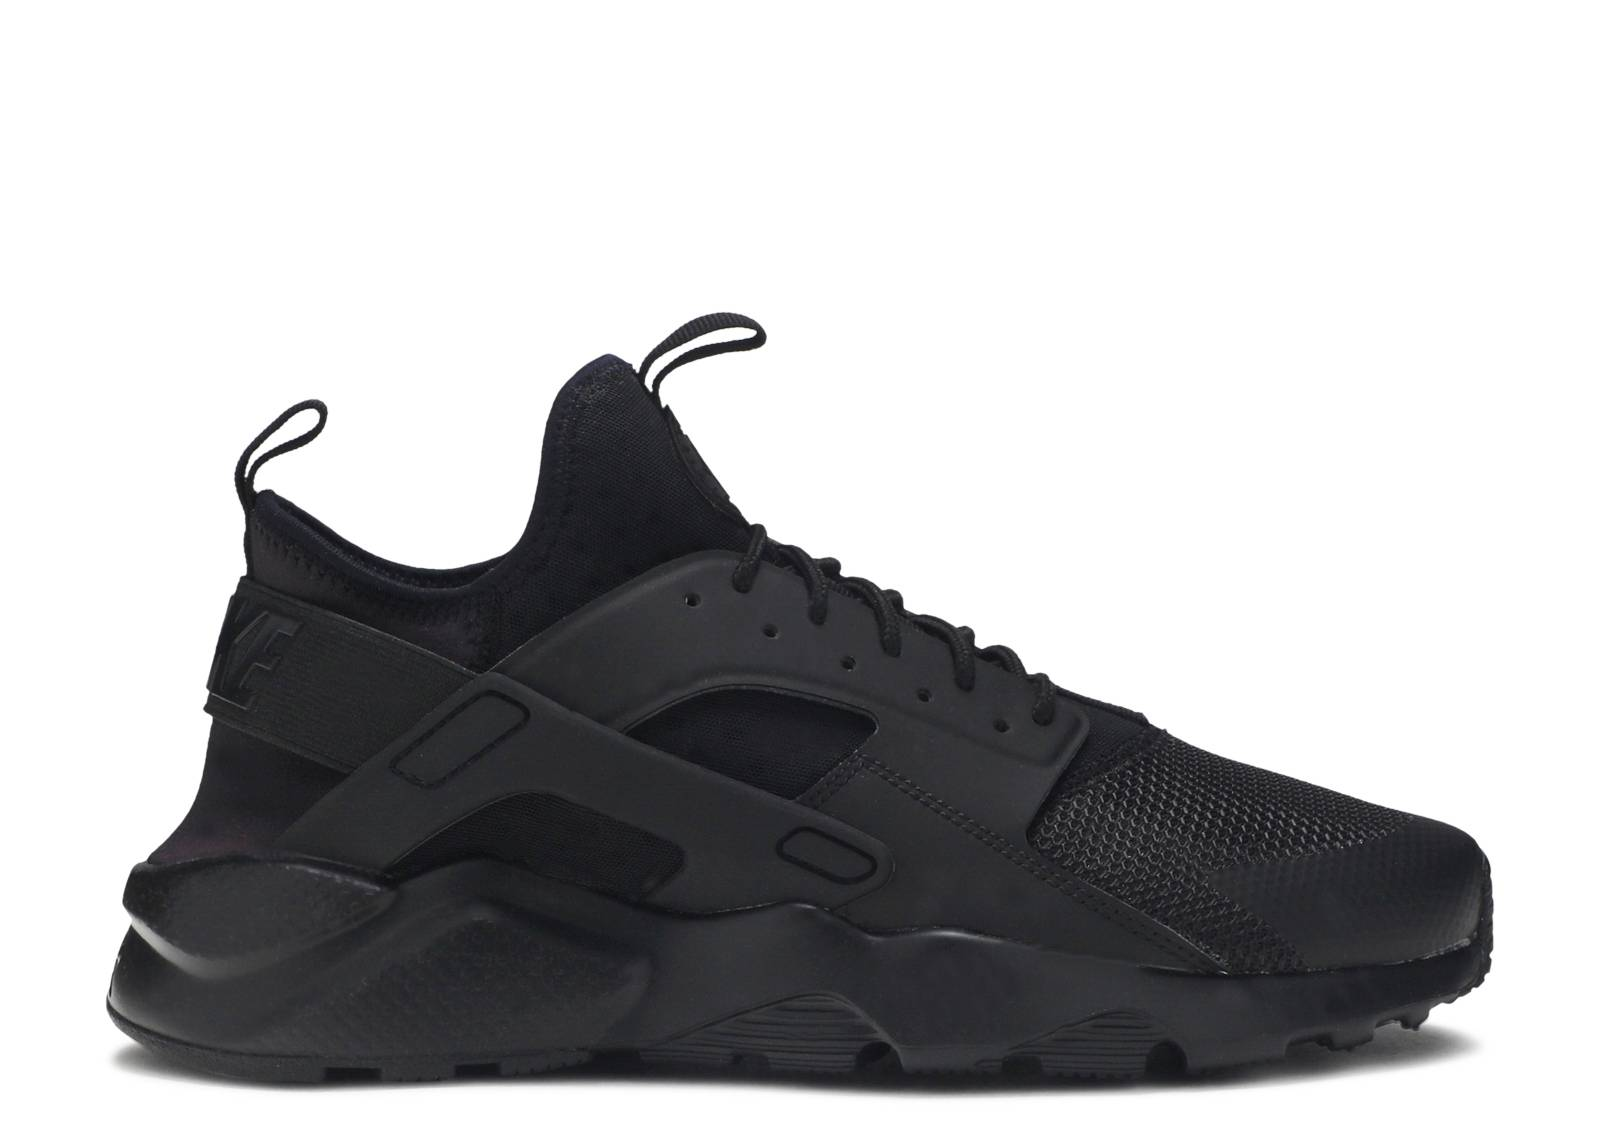 95150c5274d1d nike. Nike Air Huarache Run Ultra